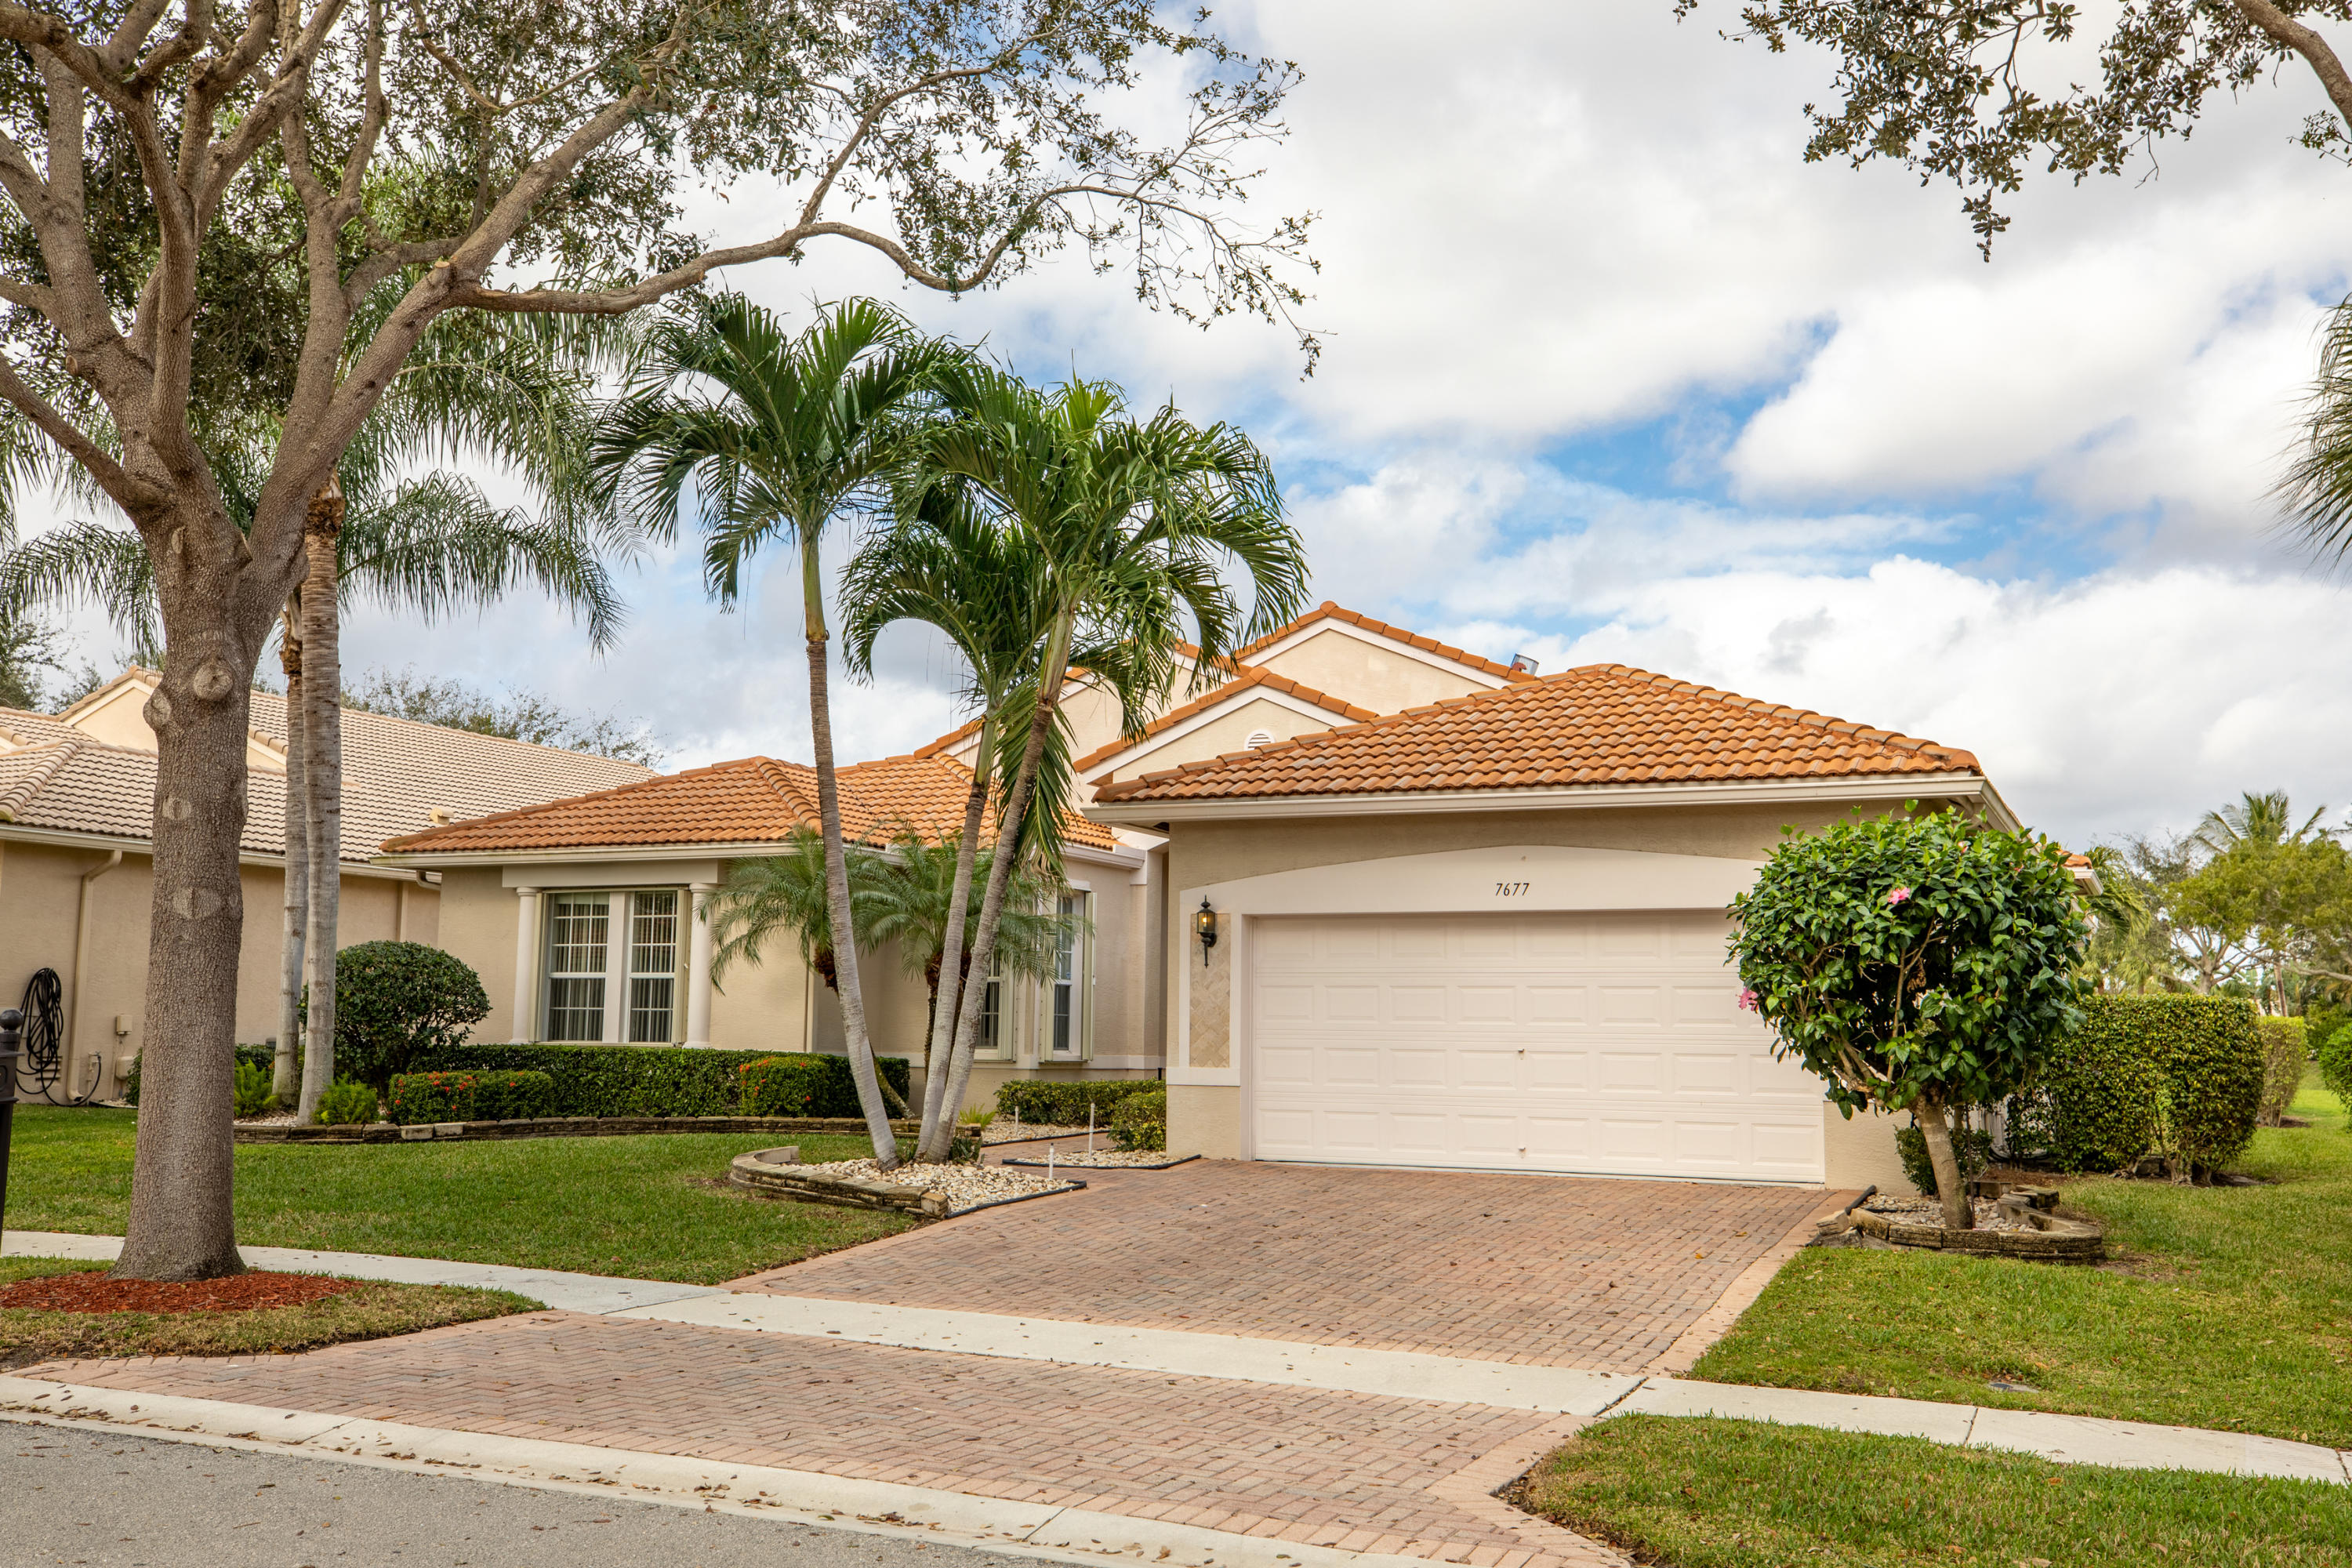 Home for sale in Avalon Estates Boynton Beach Florida